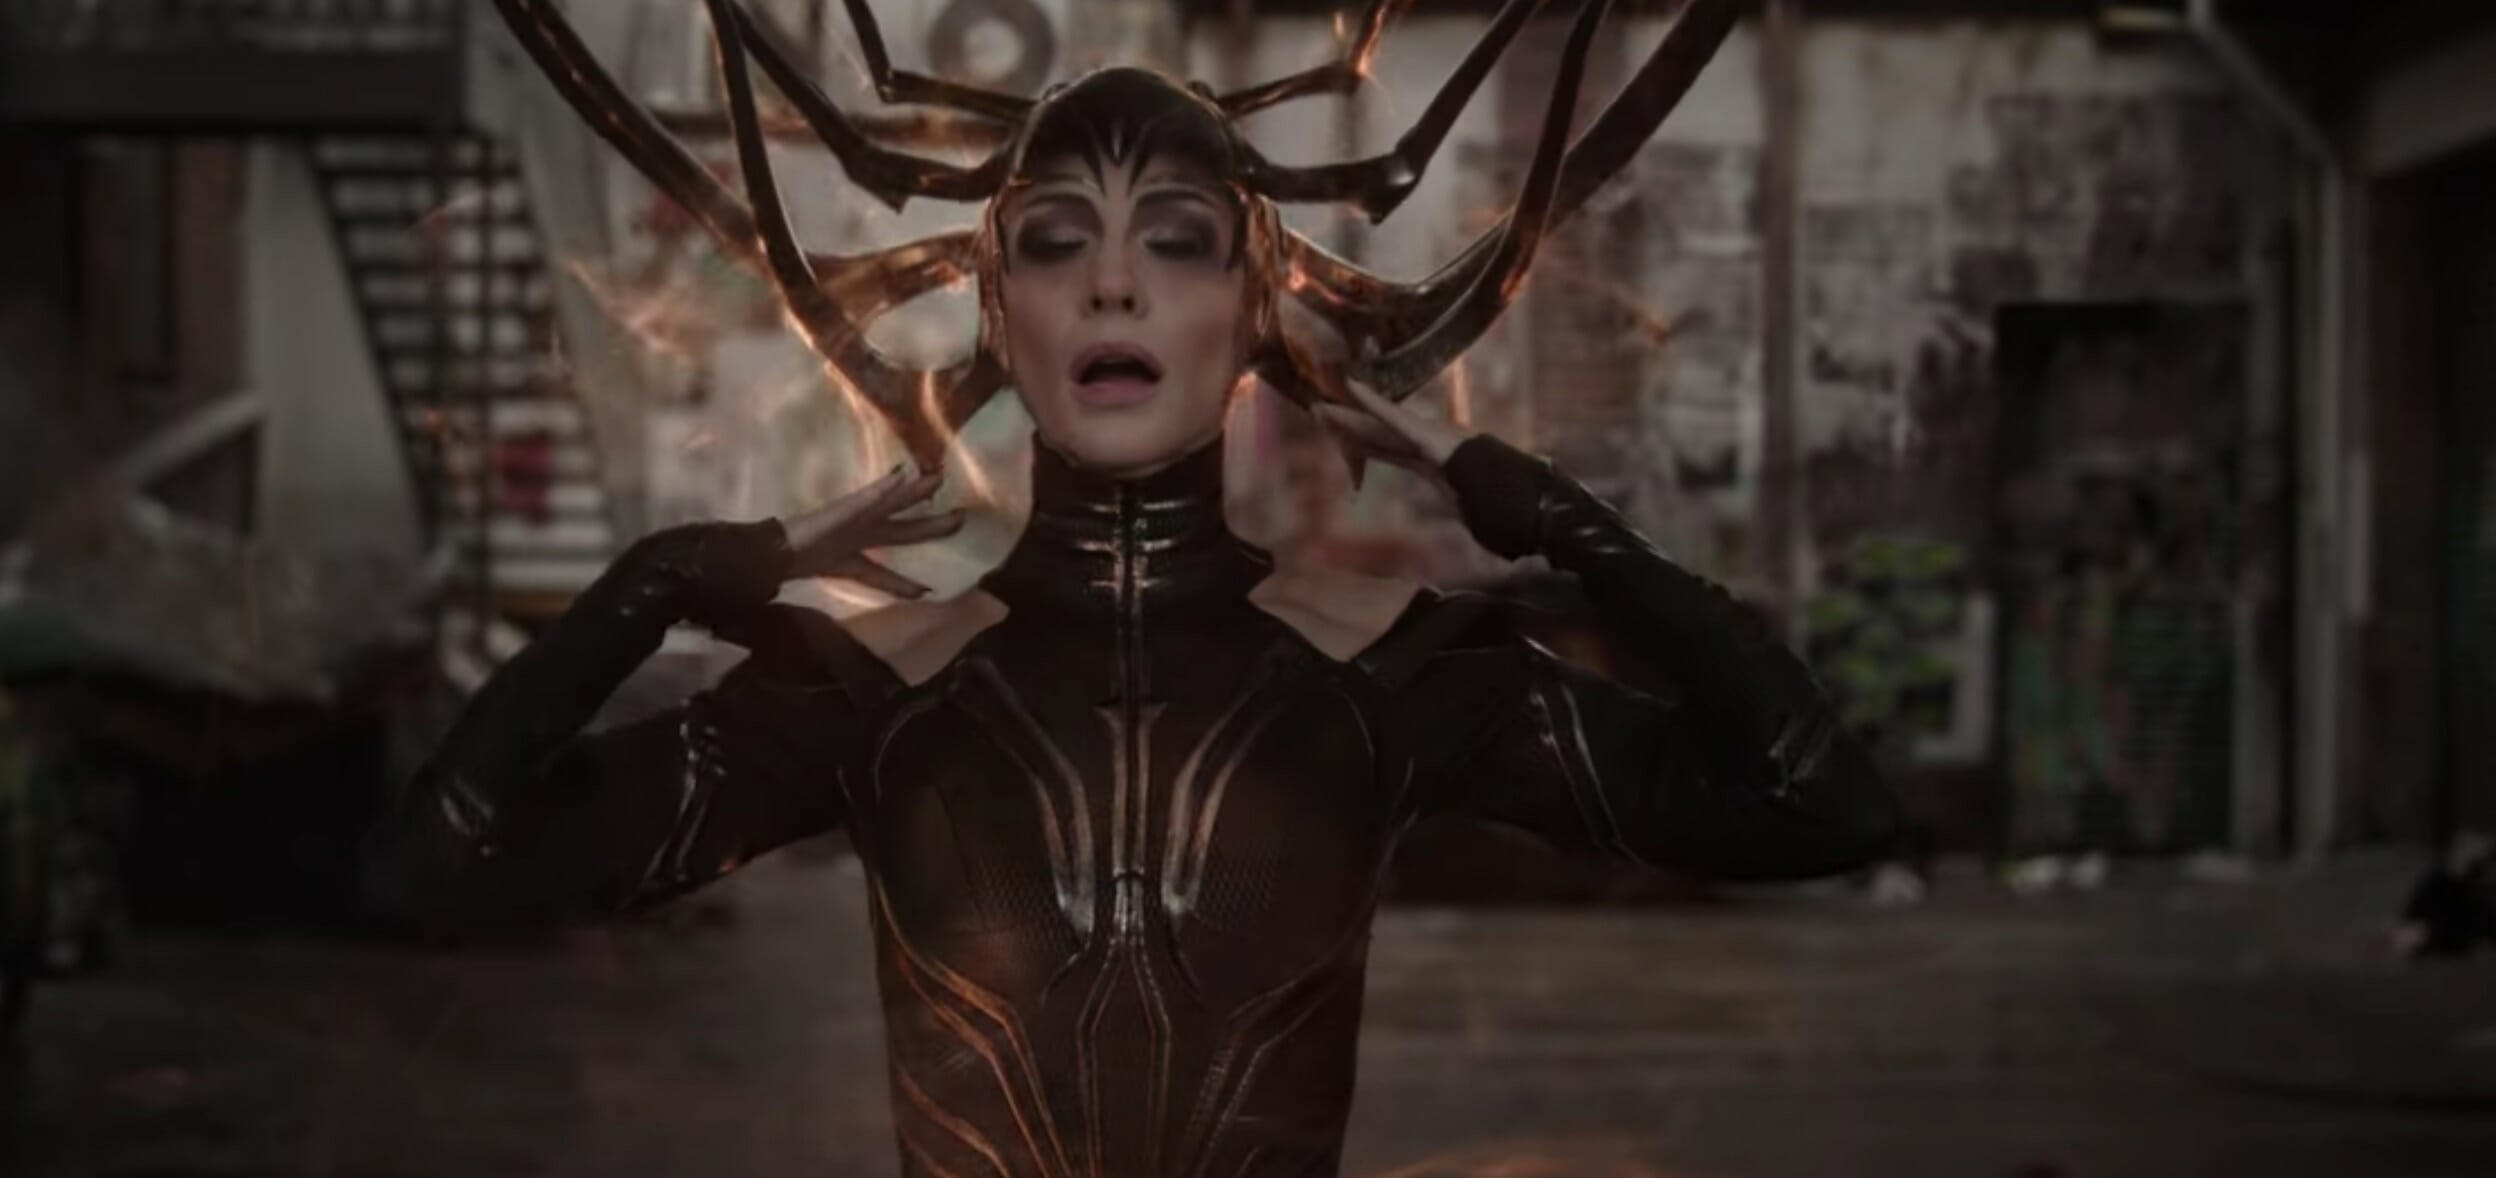 mcu phase 3 villains - hela from Thor